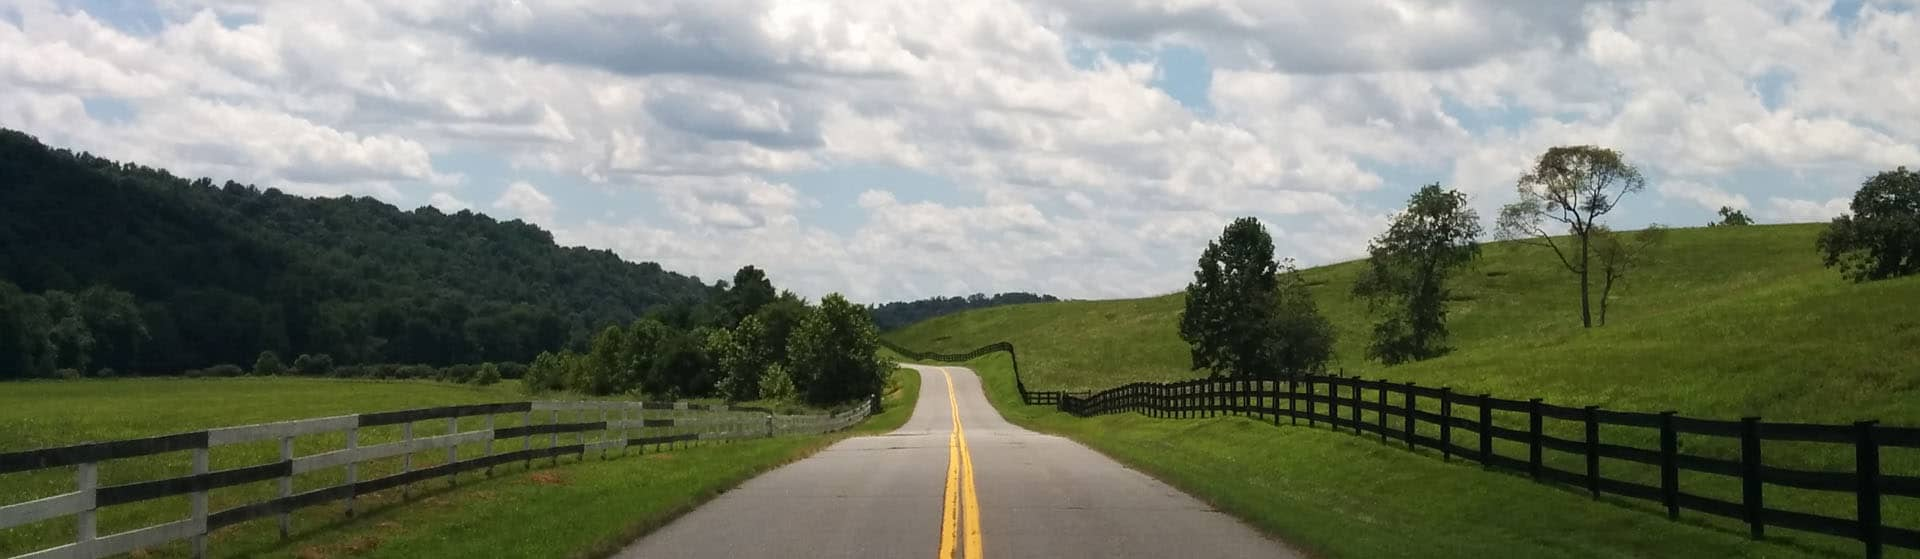 Graves Mill Road in Madison, Virginia